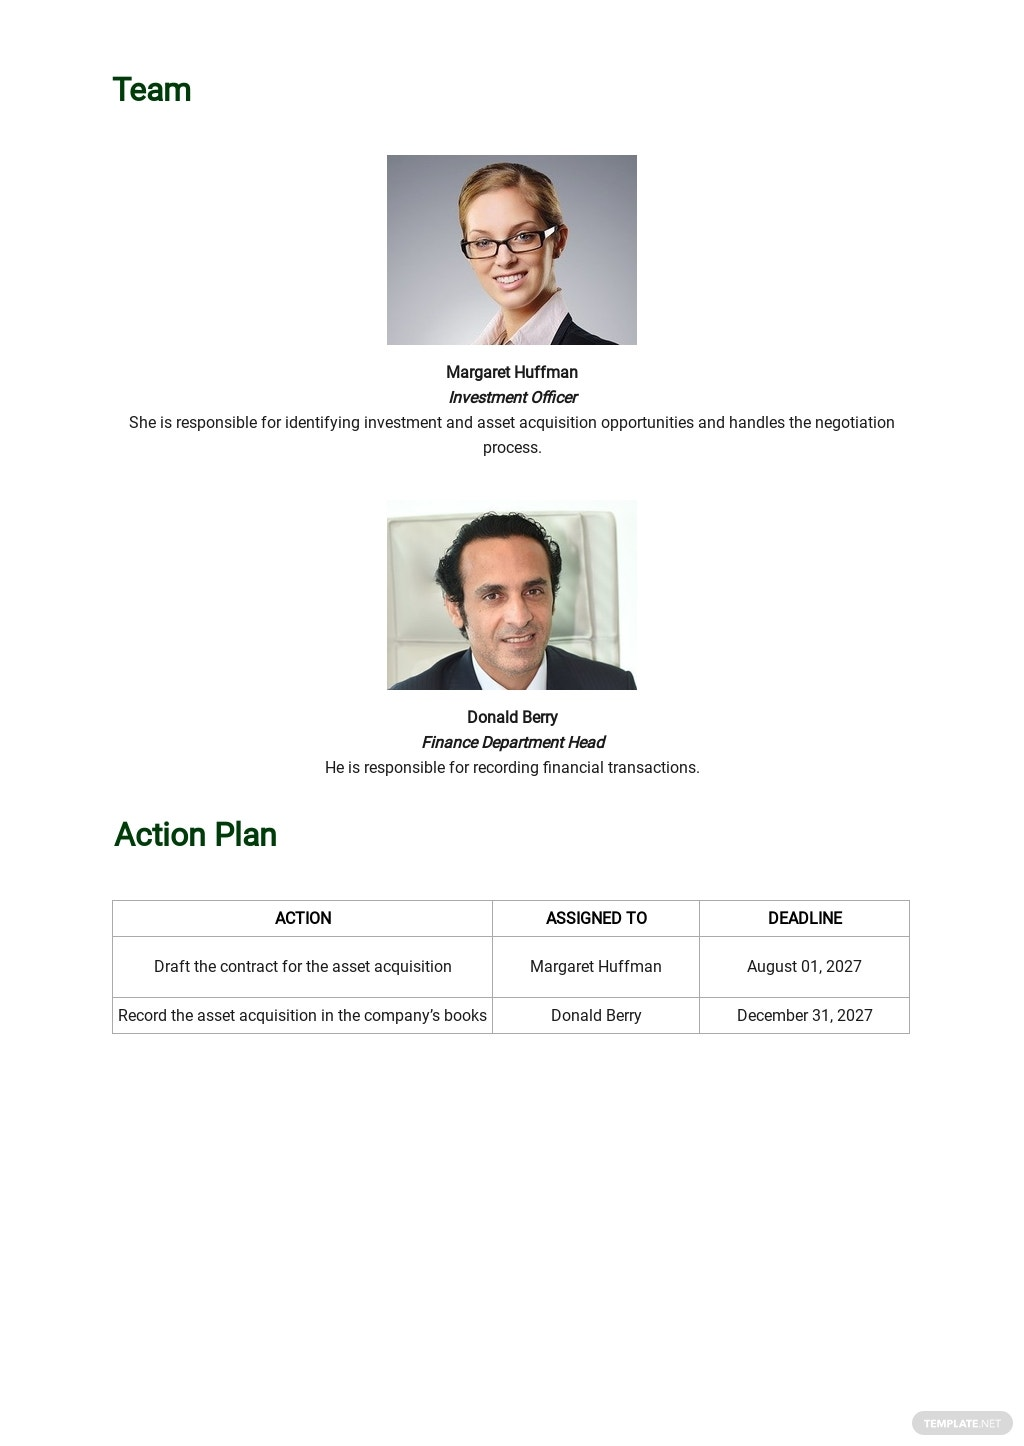 Acquisition Strategy Plan Template 3.jpe